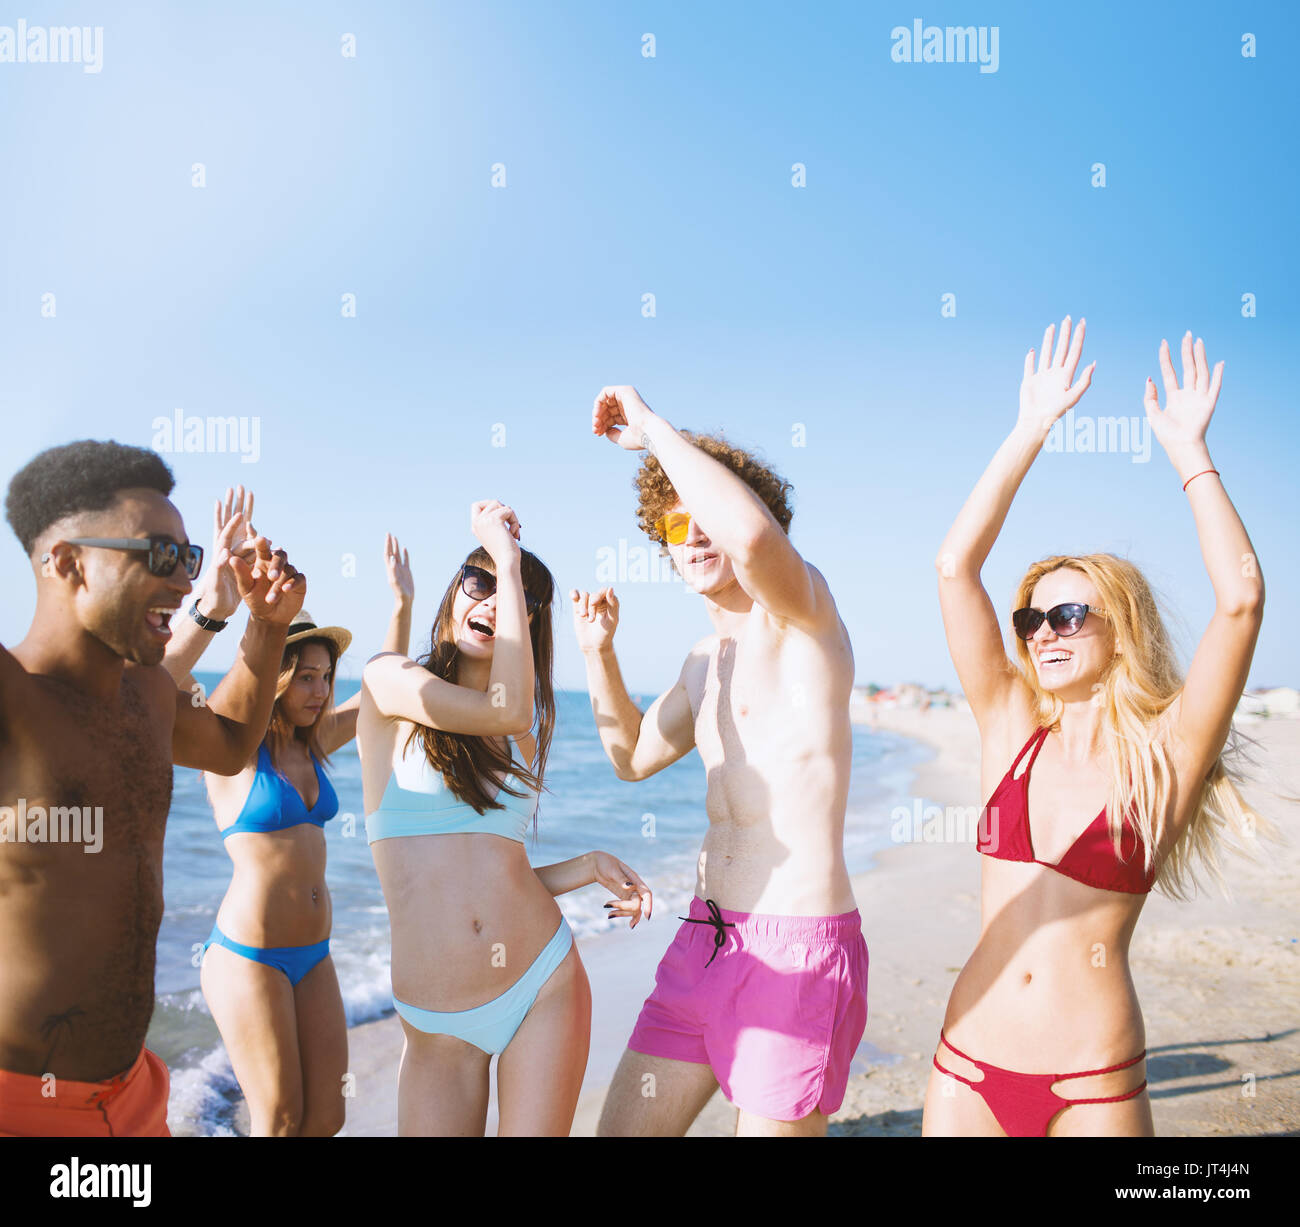 Group of friends dancing on the beach - Stock Image